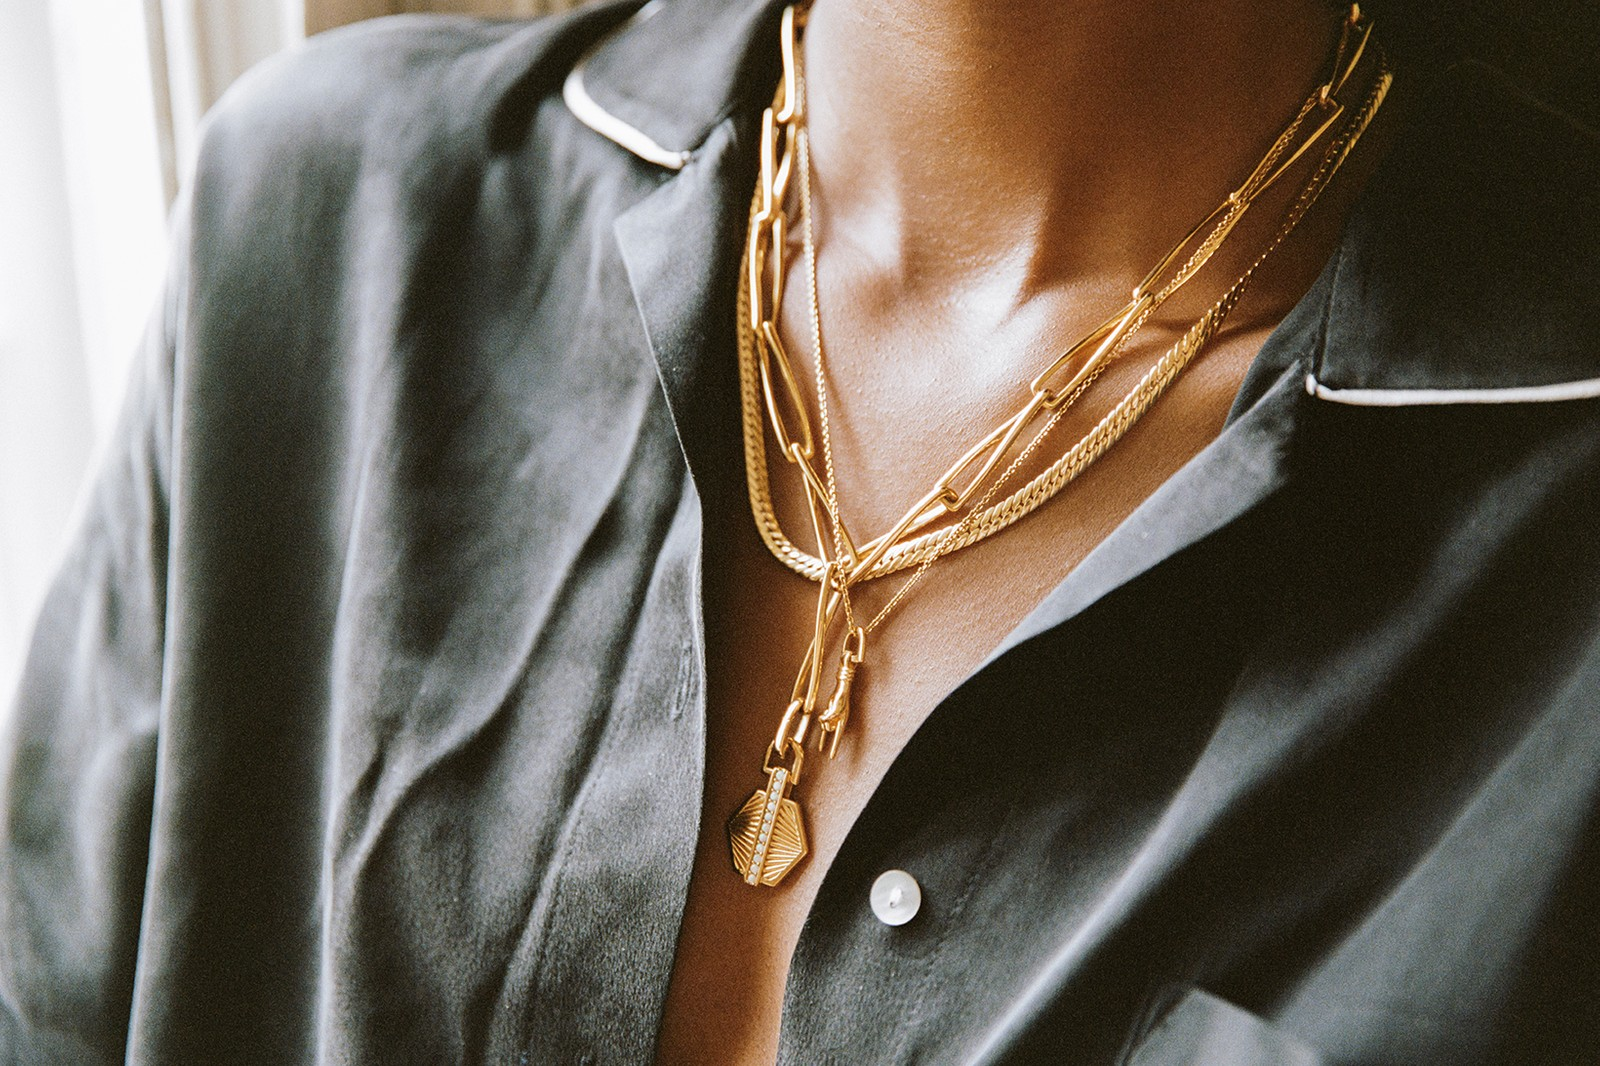 missoma virtual shopping layering lab london jewelry necklaces chains reviews tech